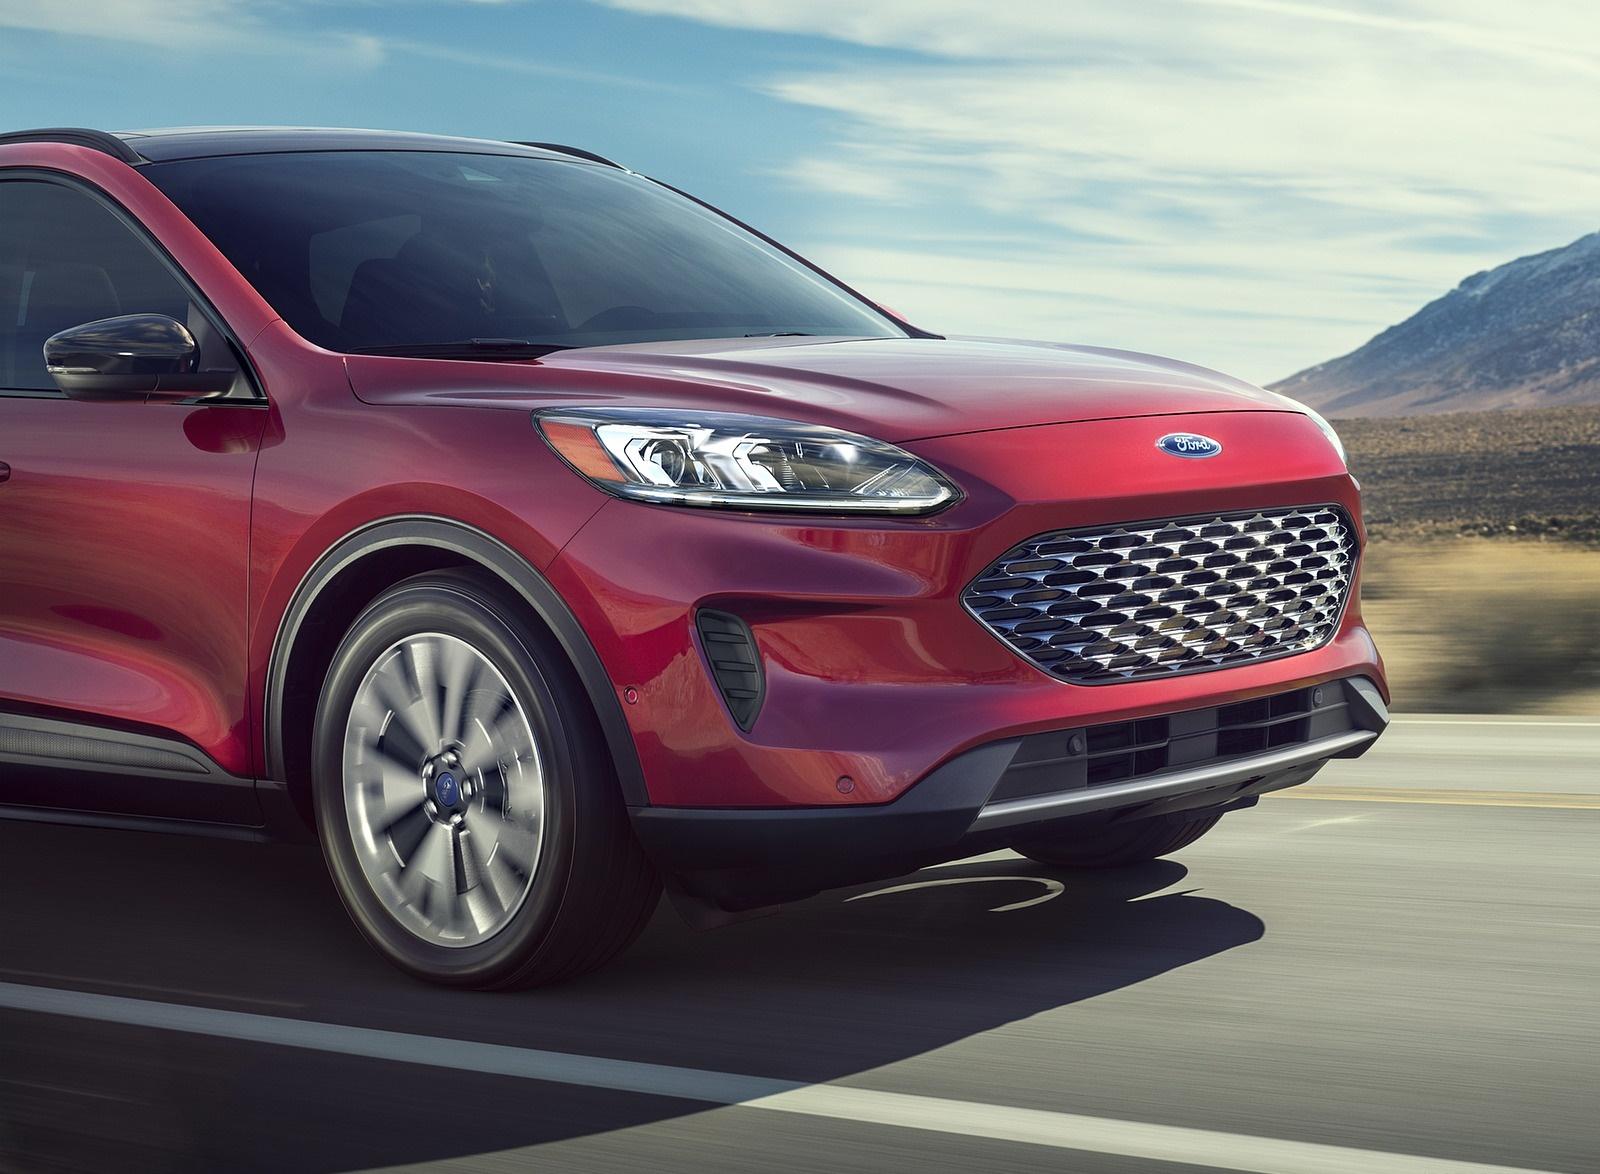 2020 Ford Escape Hybrid Detail Wallpapers (4)